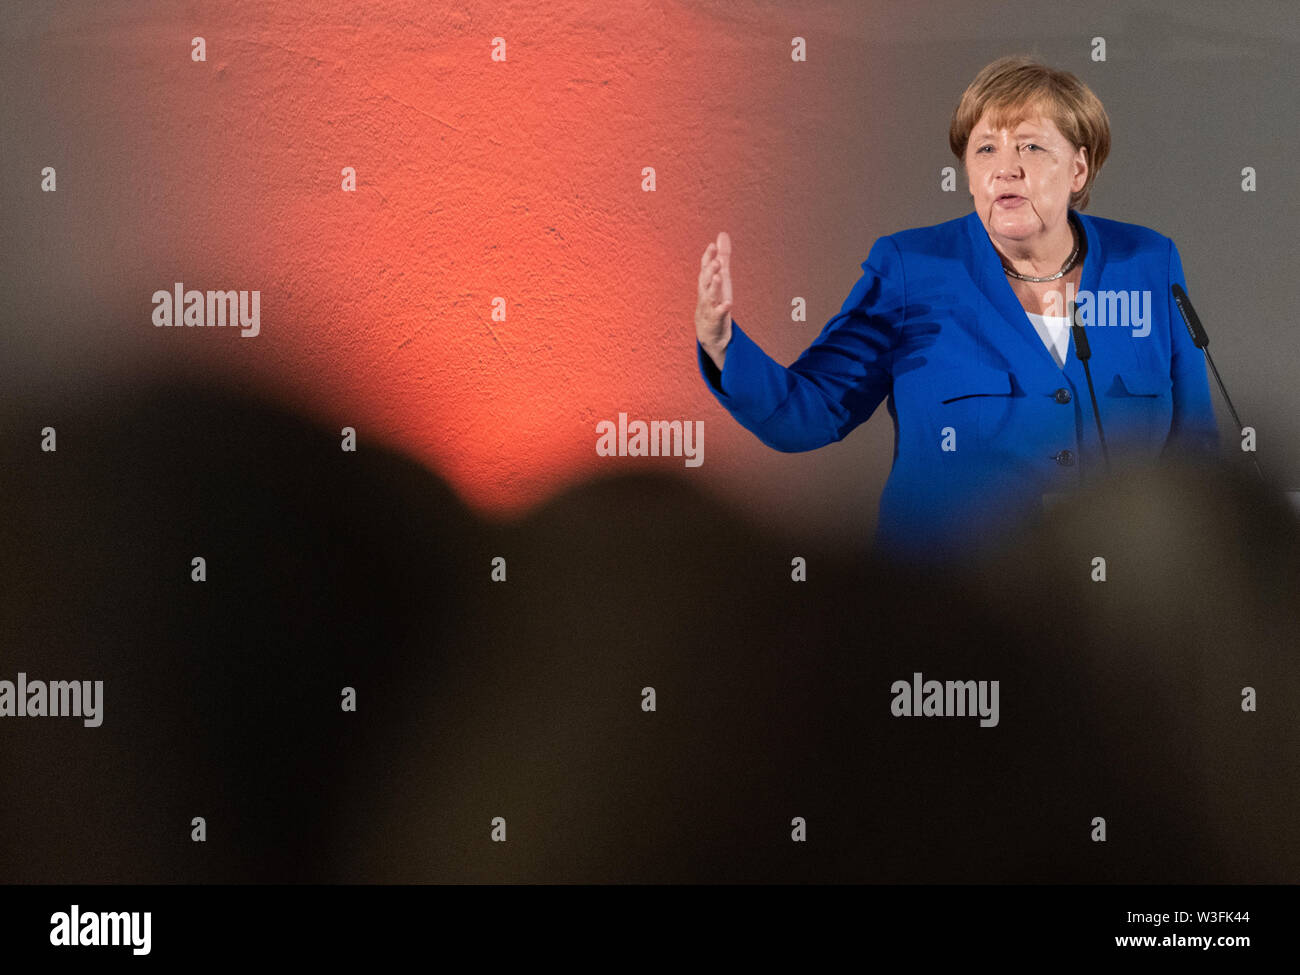 Dresden, Germany. 15th July, 2019. Chancellor Angela Merkel (CDU) speaks at the women's network meeting in the Albertinum. One and a half months before the state elections in Saxony, Merkel visits the Siemens plant in the Neisse town of Görlitz and a women's network meeting in the state capital. Credit: Robert Michael/dpa-Zentralbild/dpa/Alamy Live News - Stock Image